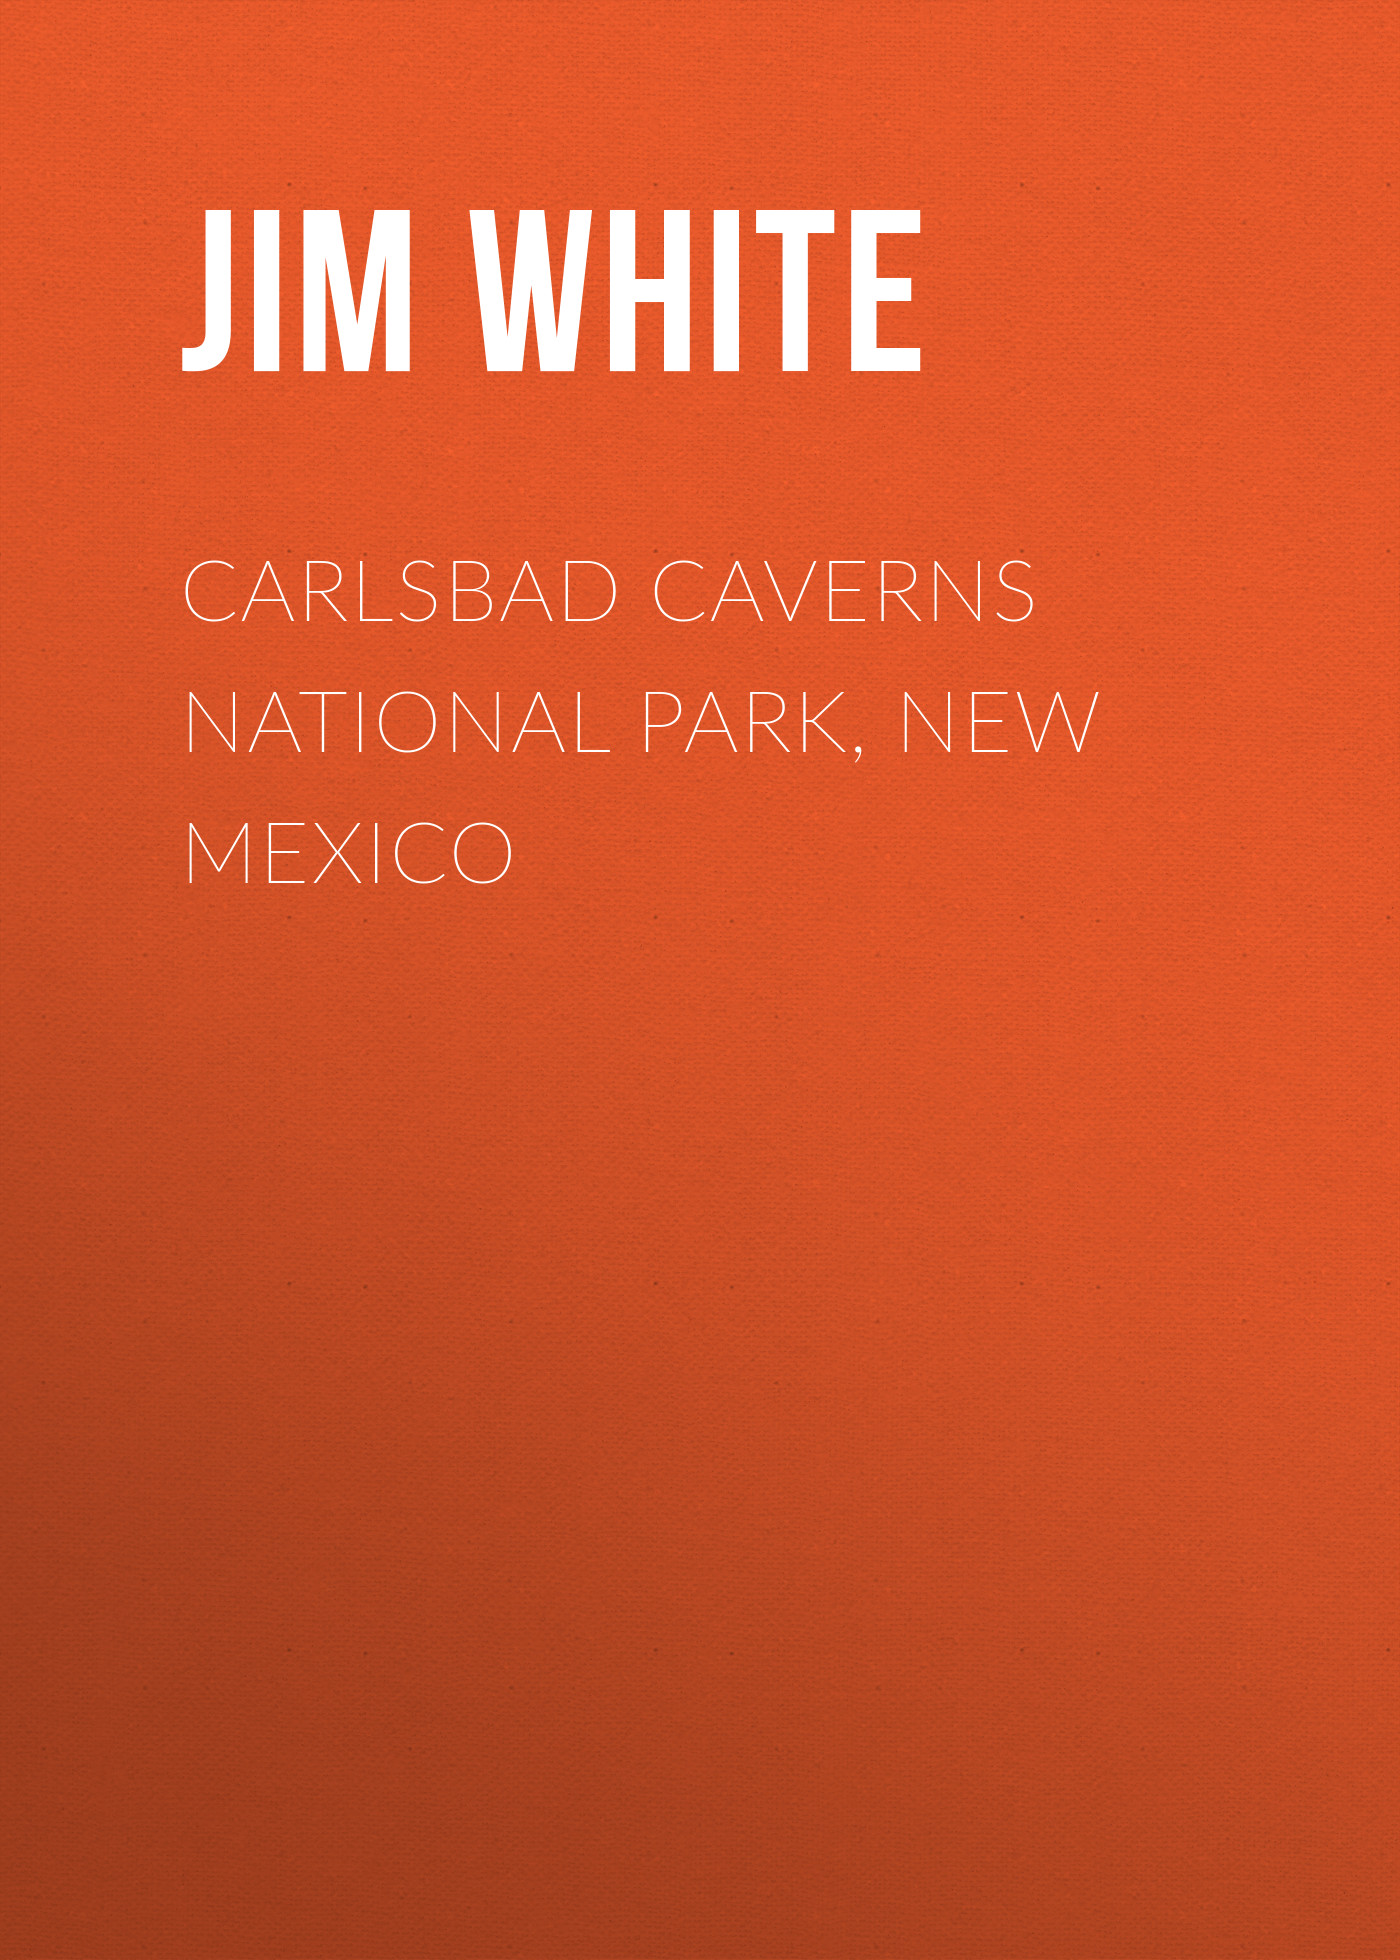 лучшая цена Jim White Carlsbad Caverns National Park, New Mexico